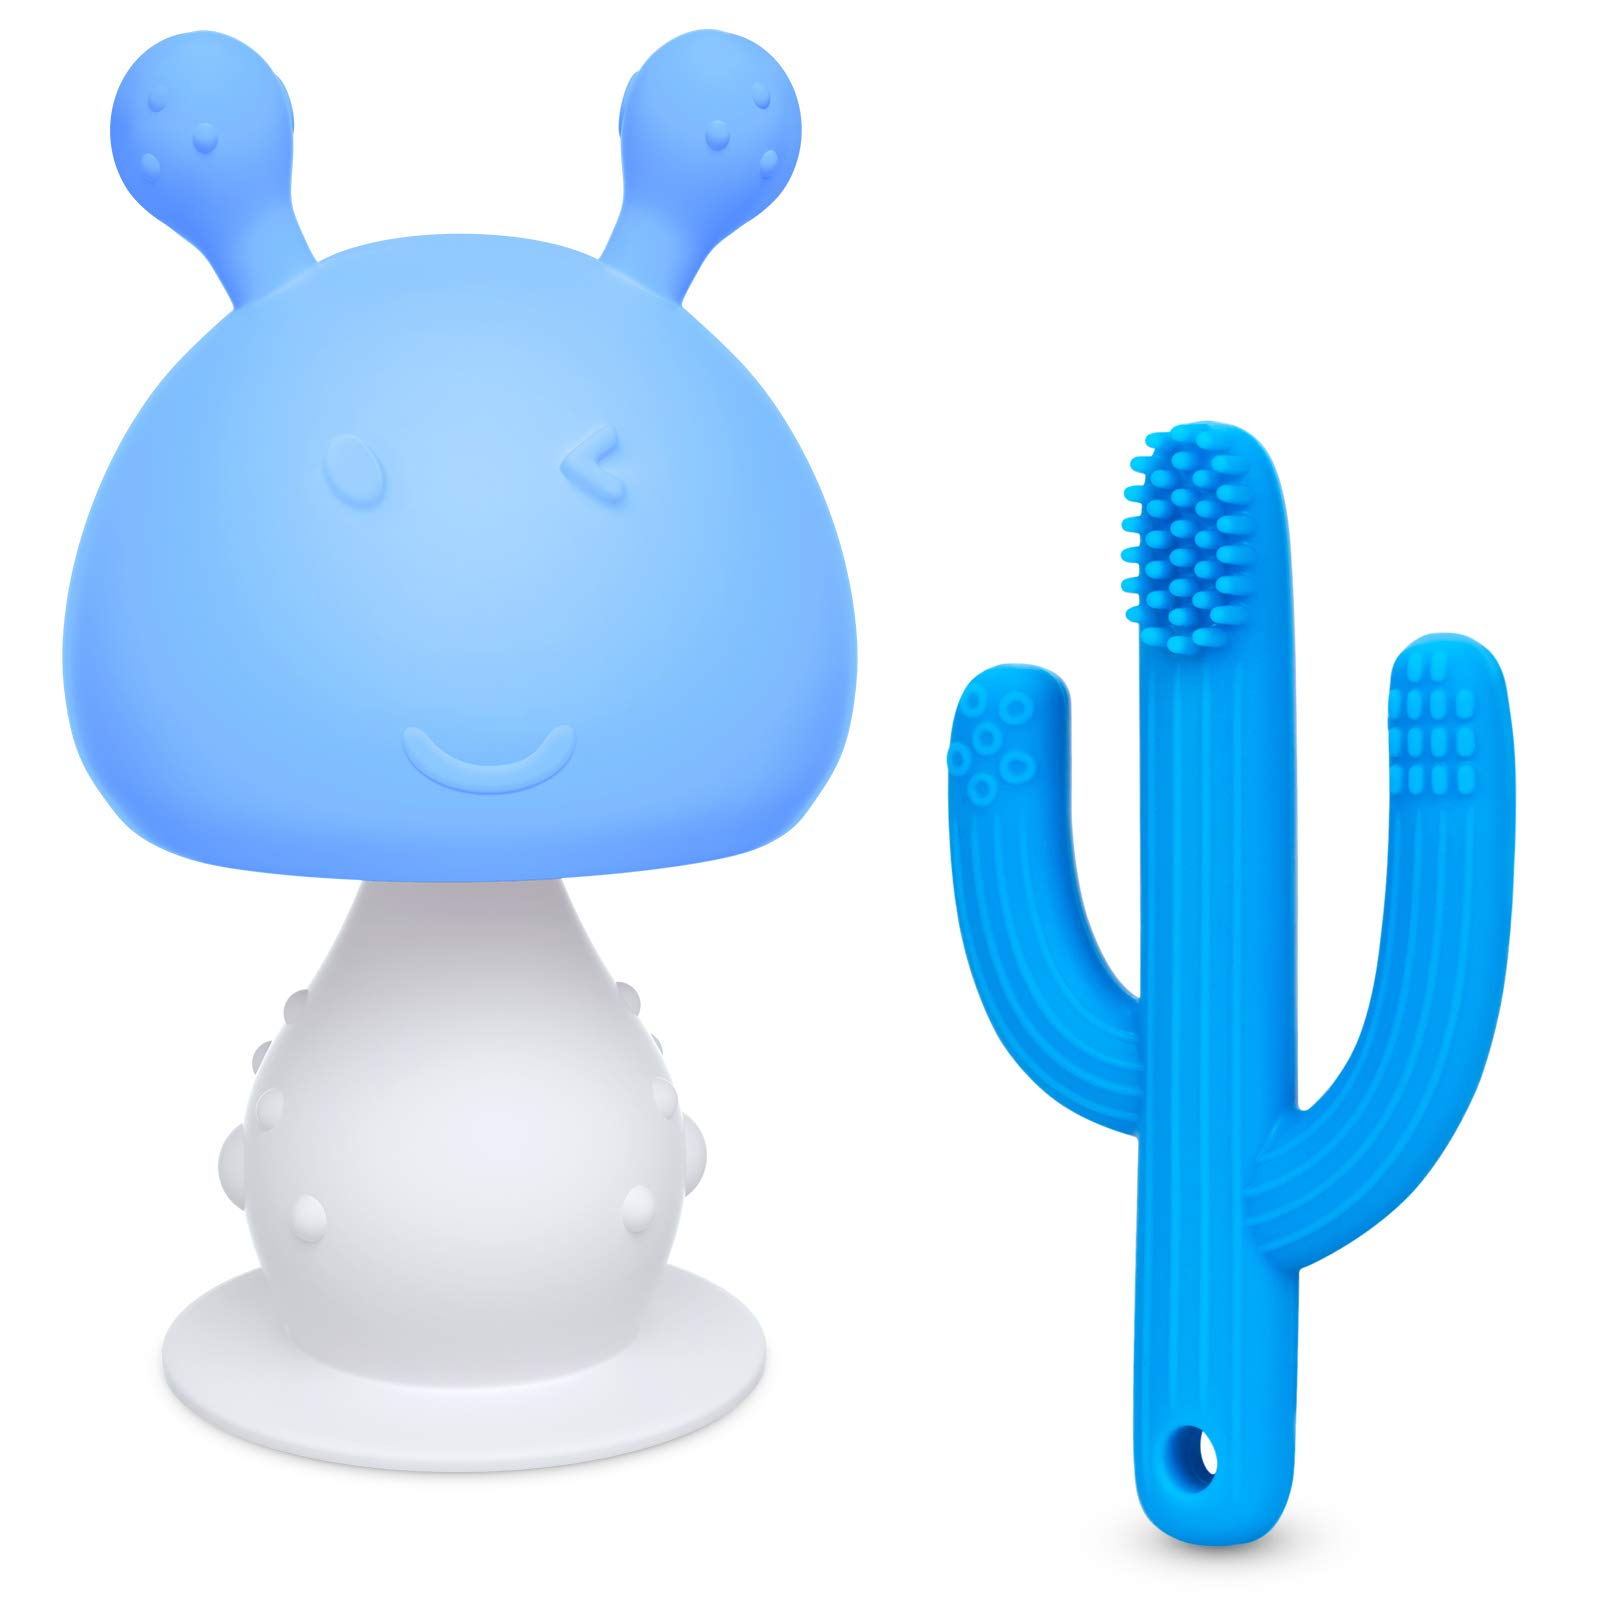 SHARE&CARE BPA Free Baby Teething Toys Set, 1pc Infant Rattling Mushroom Baby Teether Toys and 1pc Silicone Cactus Toothbrush Teether, Cute Chew Toys for Boys Girls Babies Toddlers Newborn (Blue2)